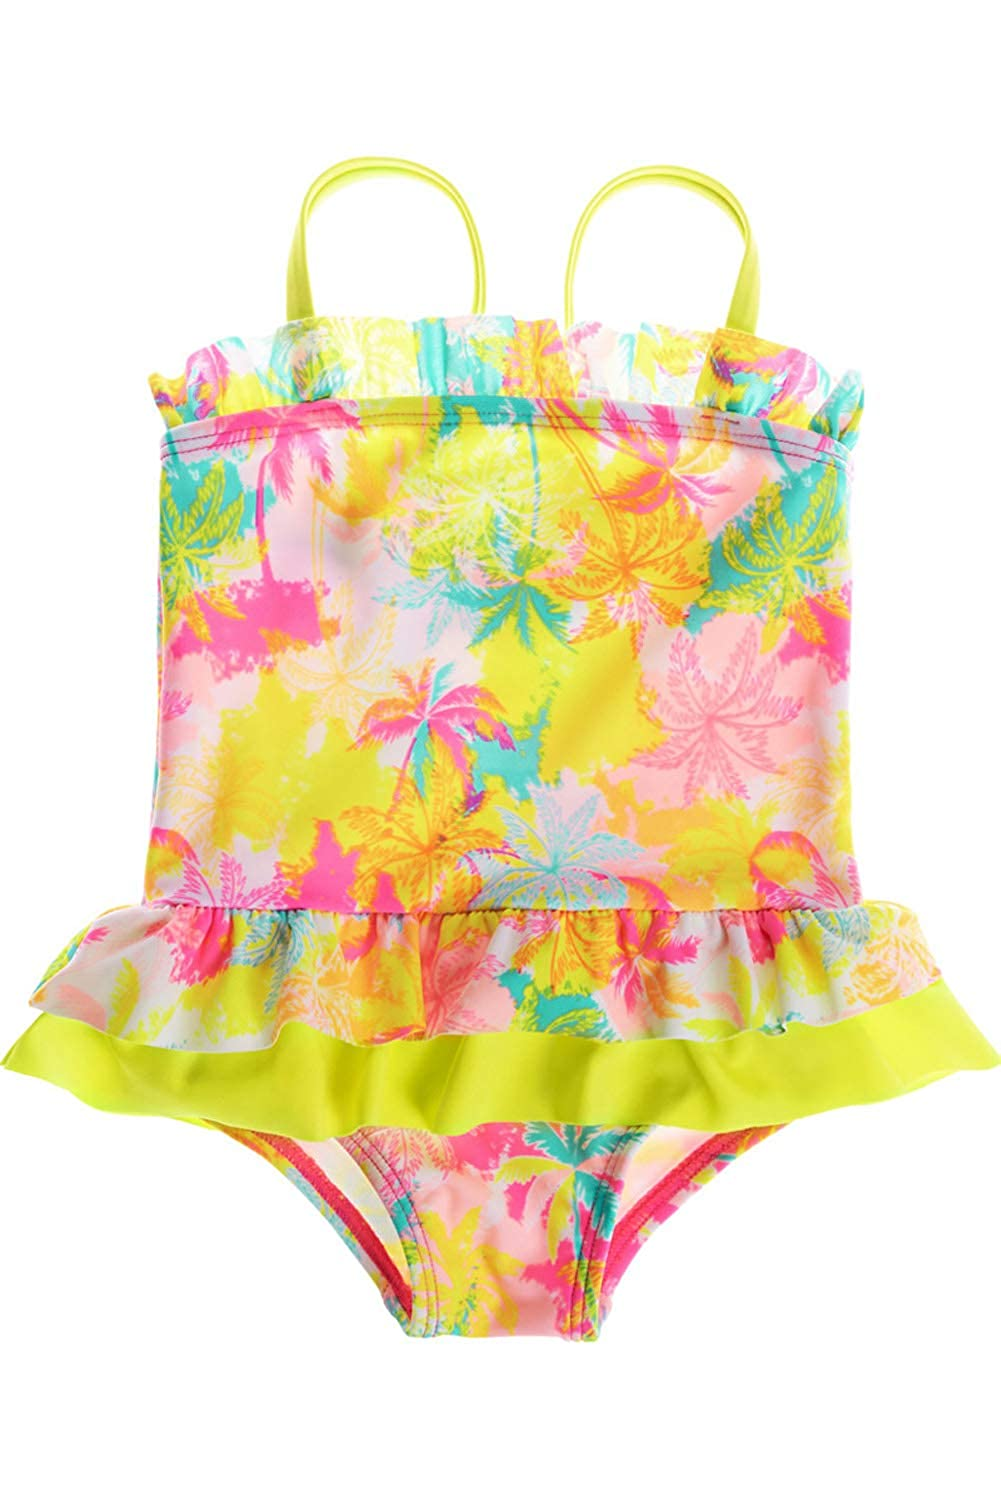 CharmLeaks Baby Girls Cute One Piece Swimming Costumes Printed Swimsuits Swimwear